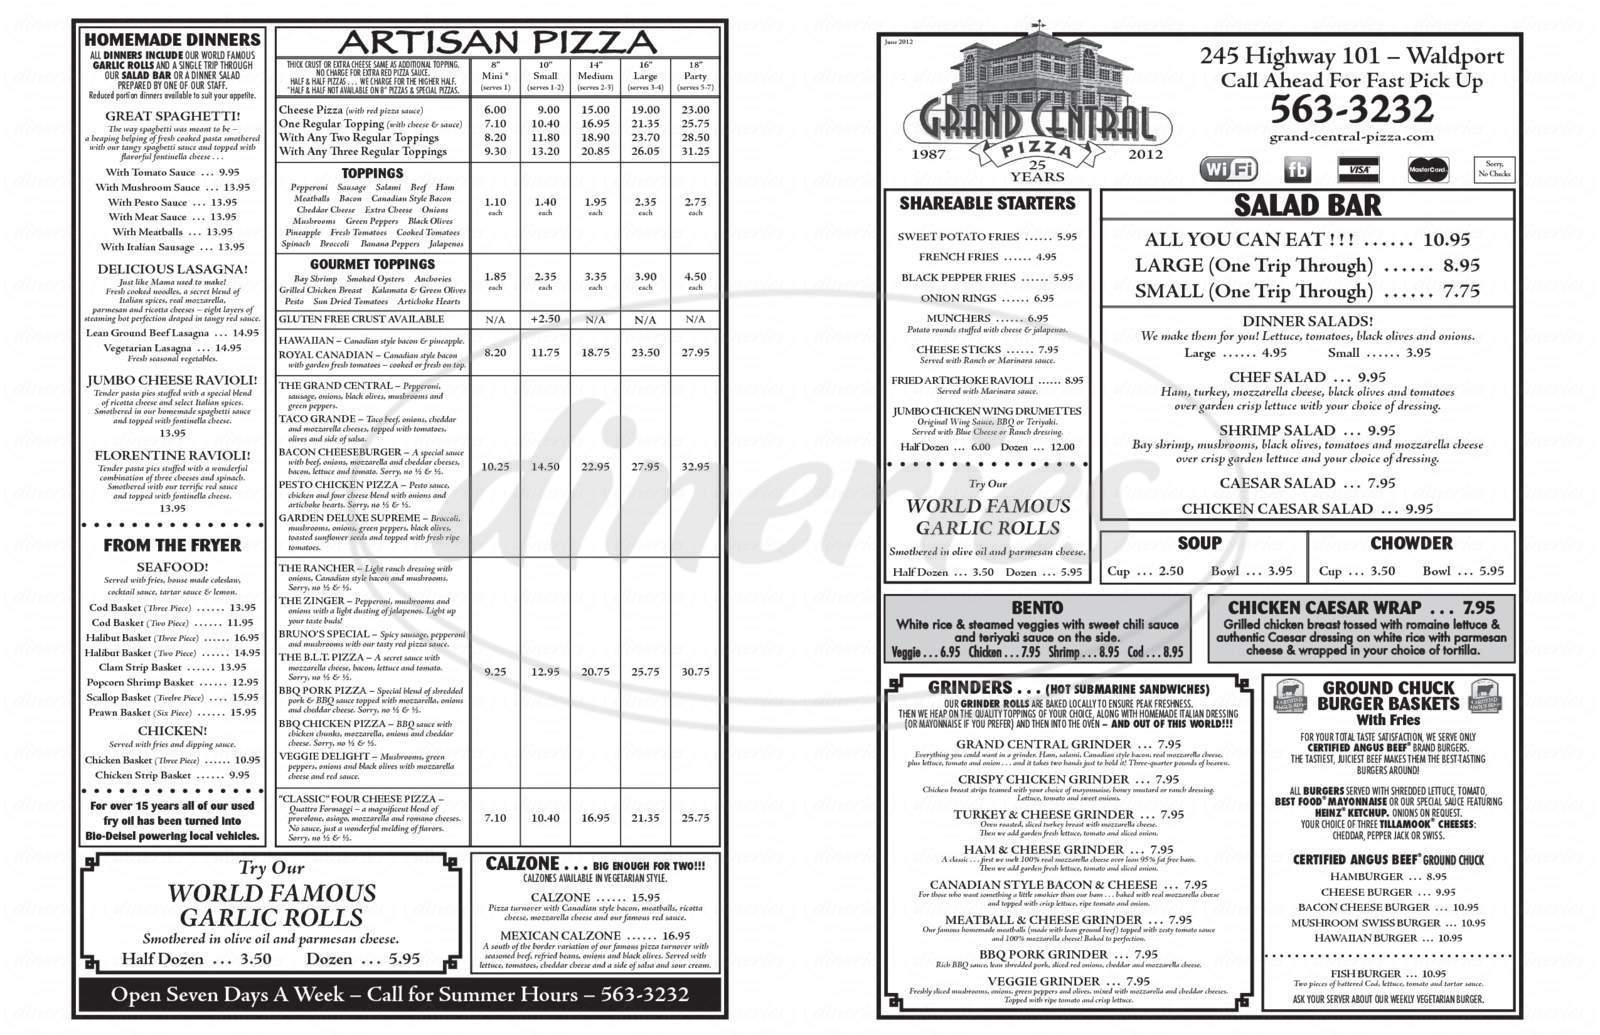 menu for Grand Central Pizza